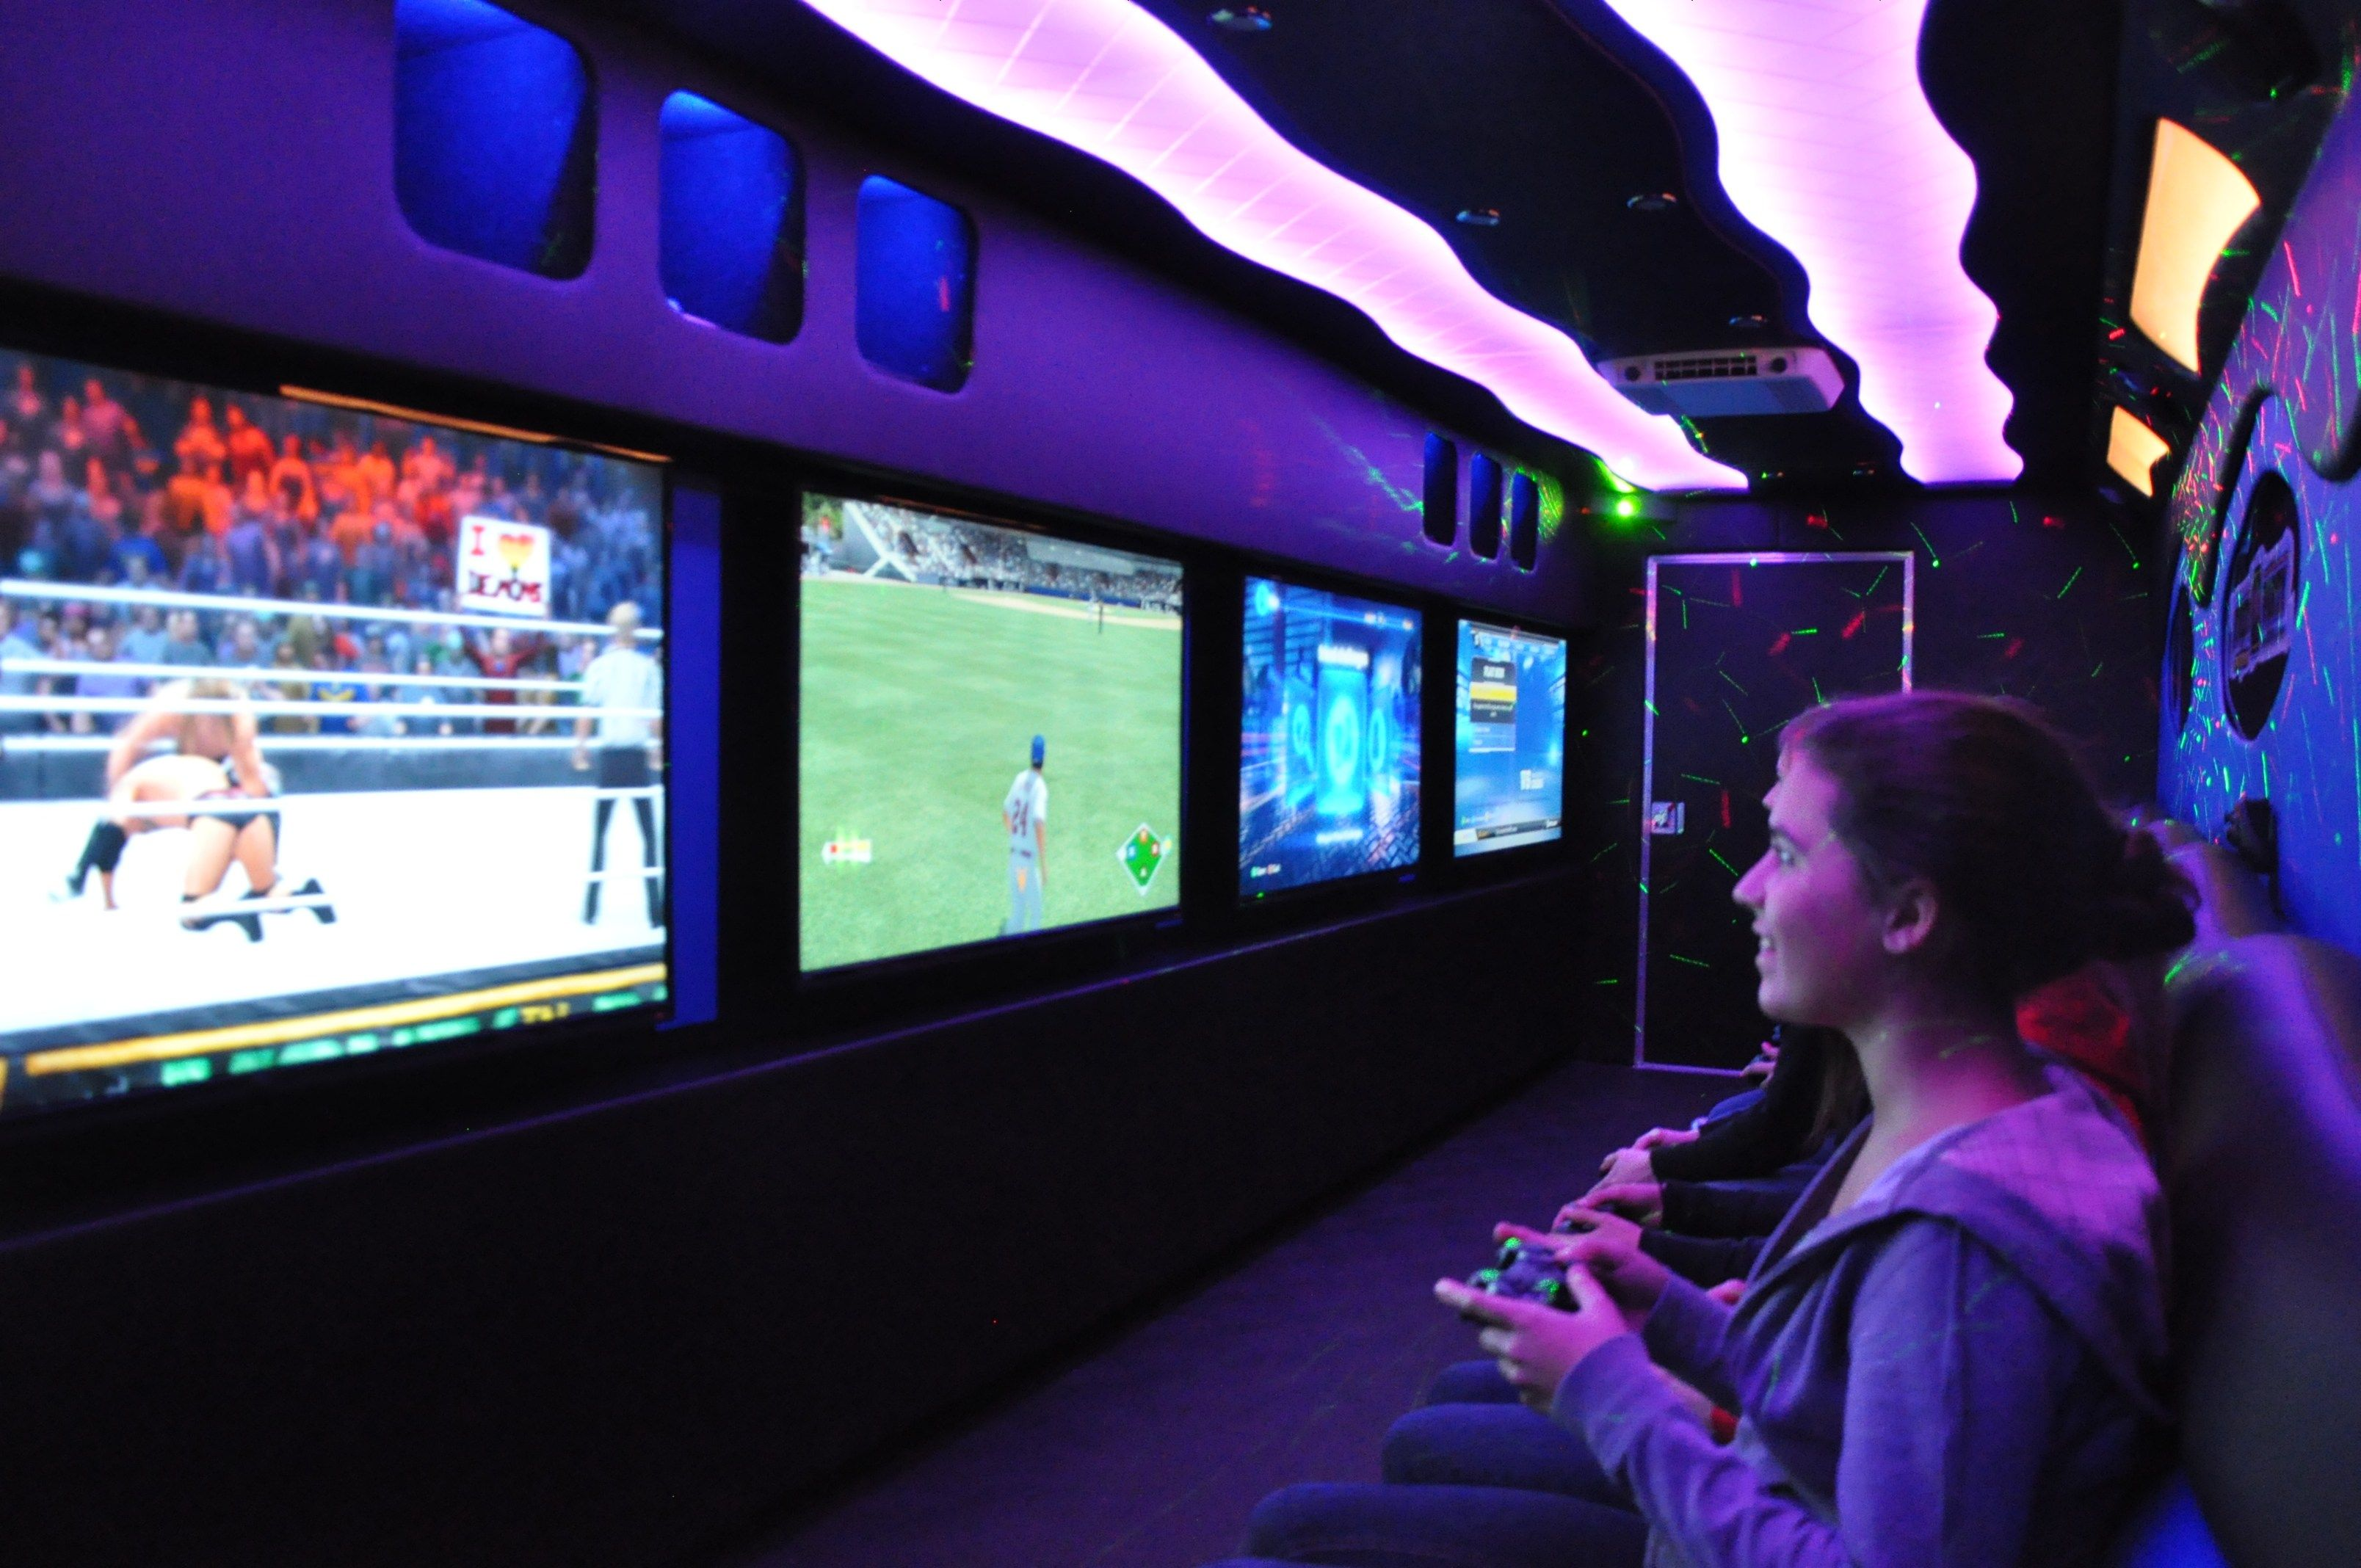 Grab the opportunity and start game truck business. Call